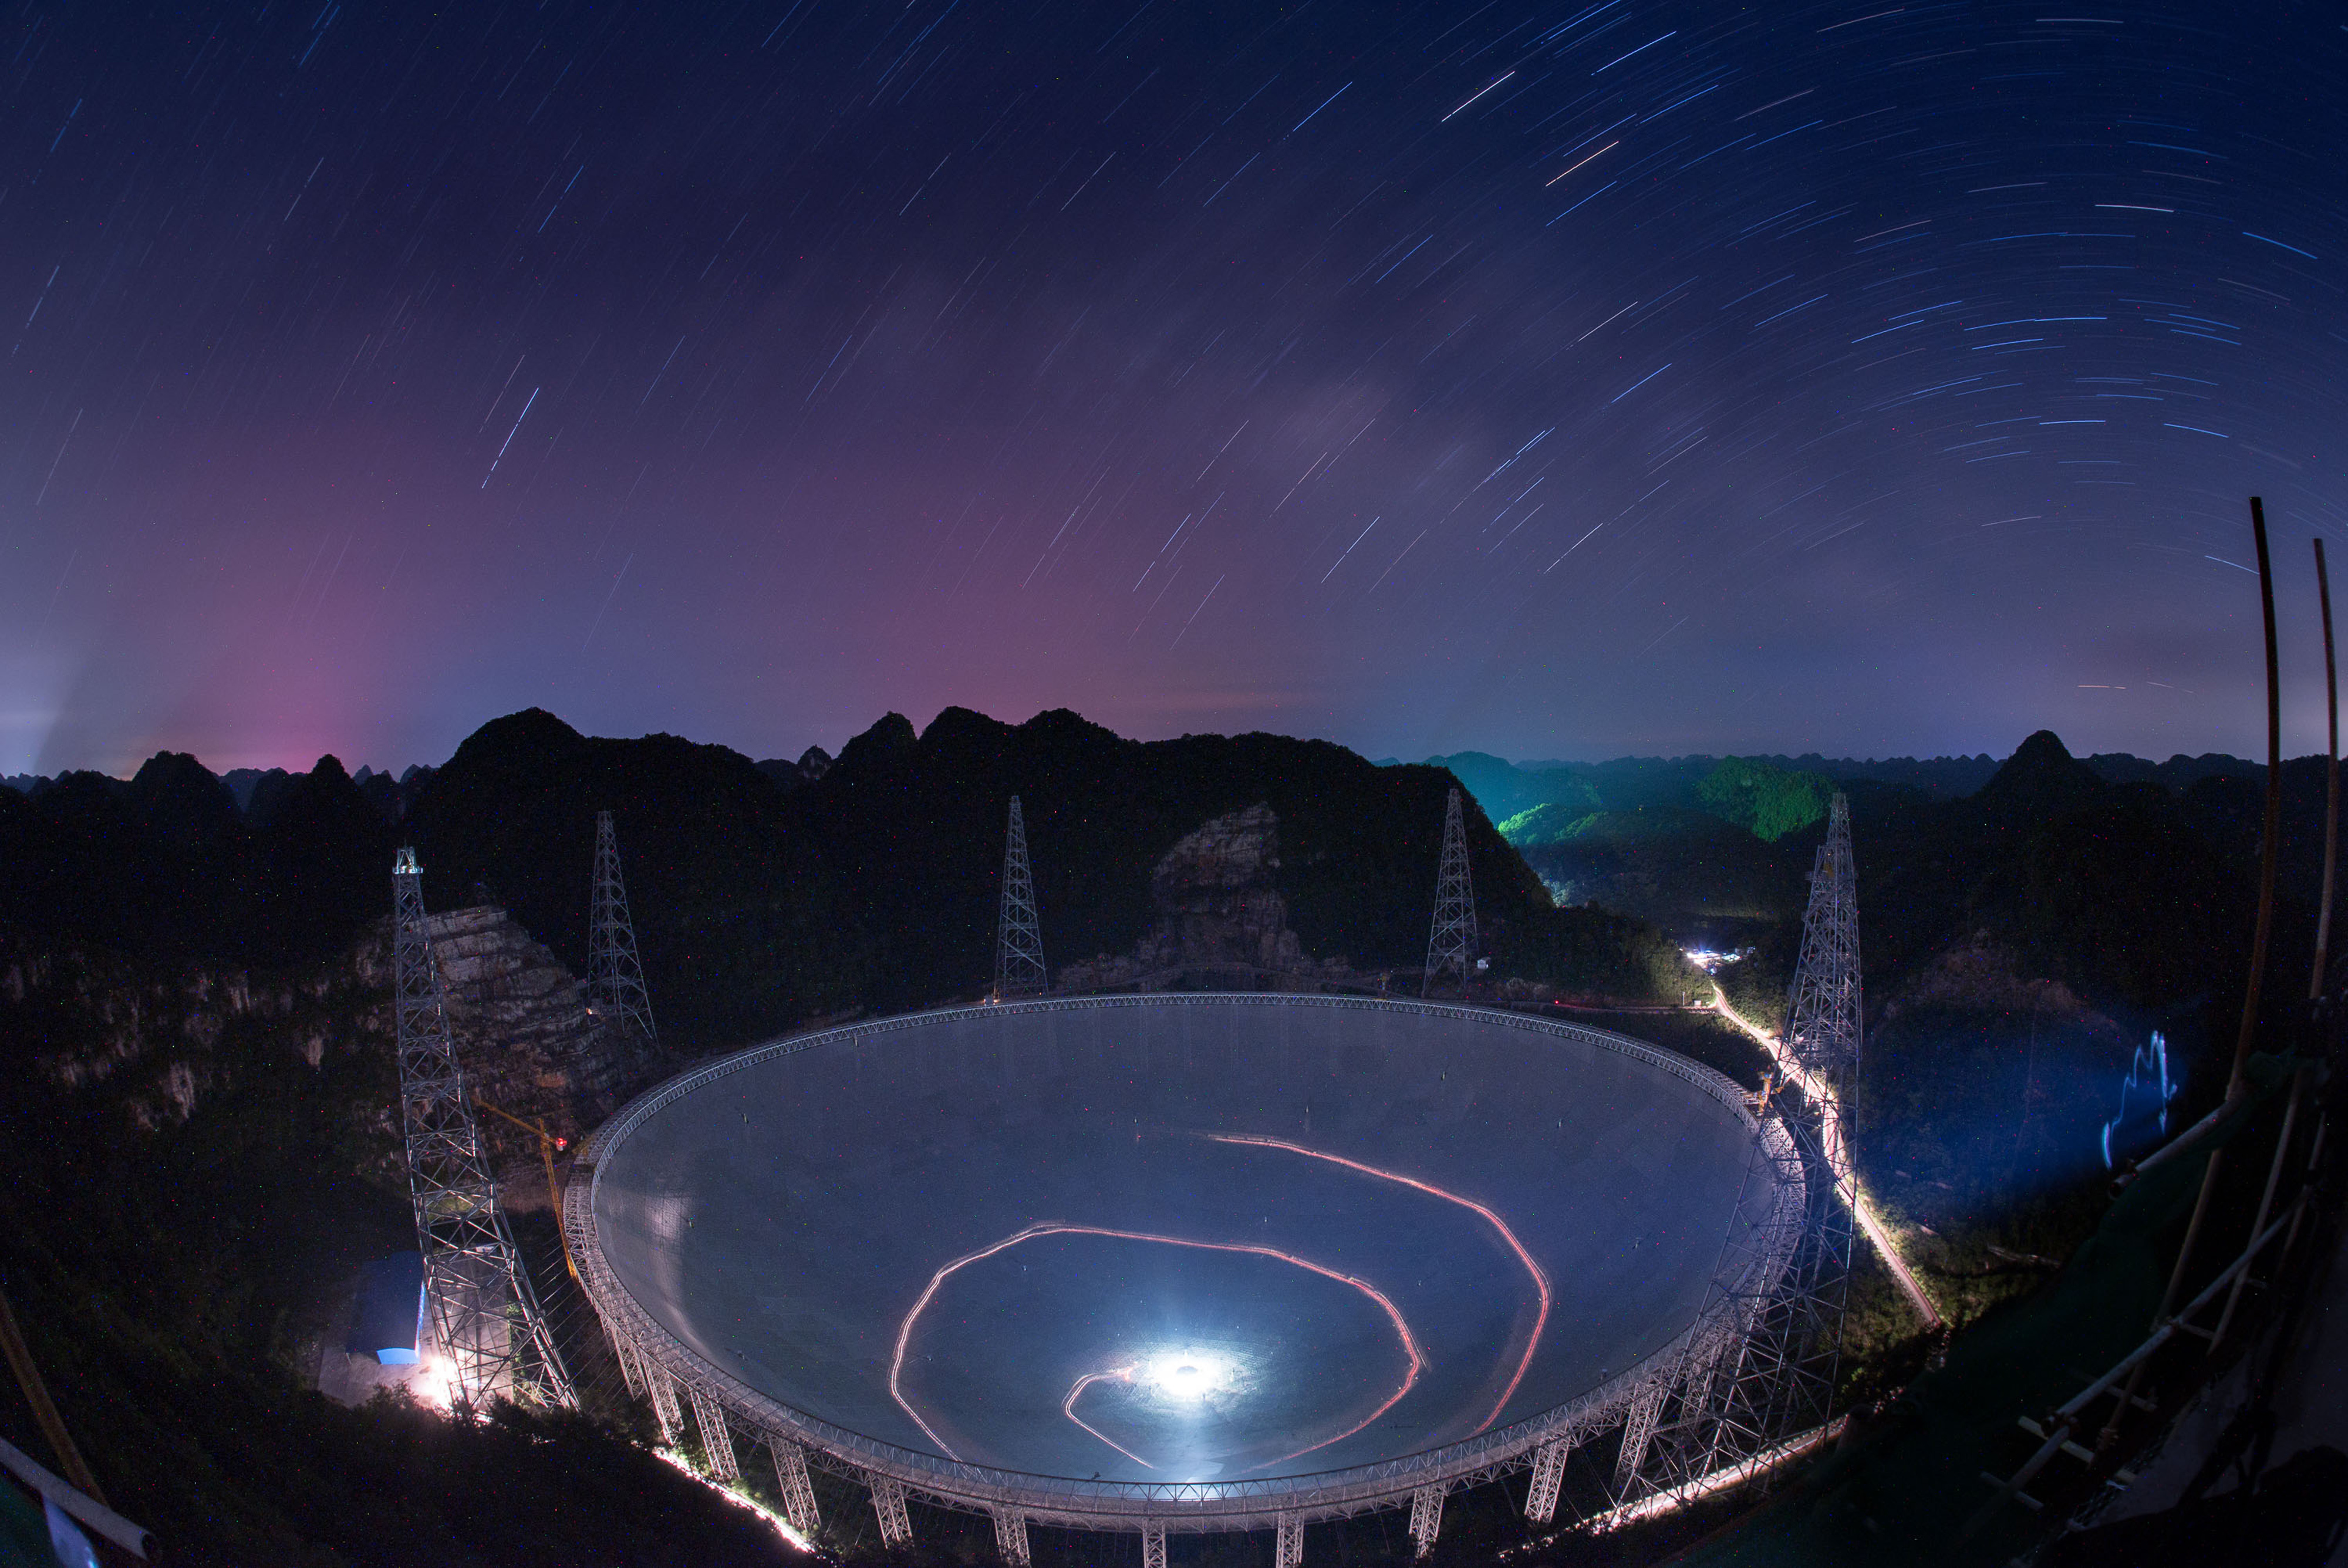 In this photo released by China's Xinhua News Agency, a vehicle leaves light trails in a long exposure photo as it drives beneath the Five-hundred-meter Aperture Spherical Telescope (FAST) in Pingtang County in southwestern China's Guizhou Province Monday, June 27, 2016. Construction on the 500-meter (1600-feet) diameter radio telescope, which began in 2011, is nearing completion. (Liu Xu/Xinhua via AP)